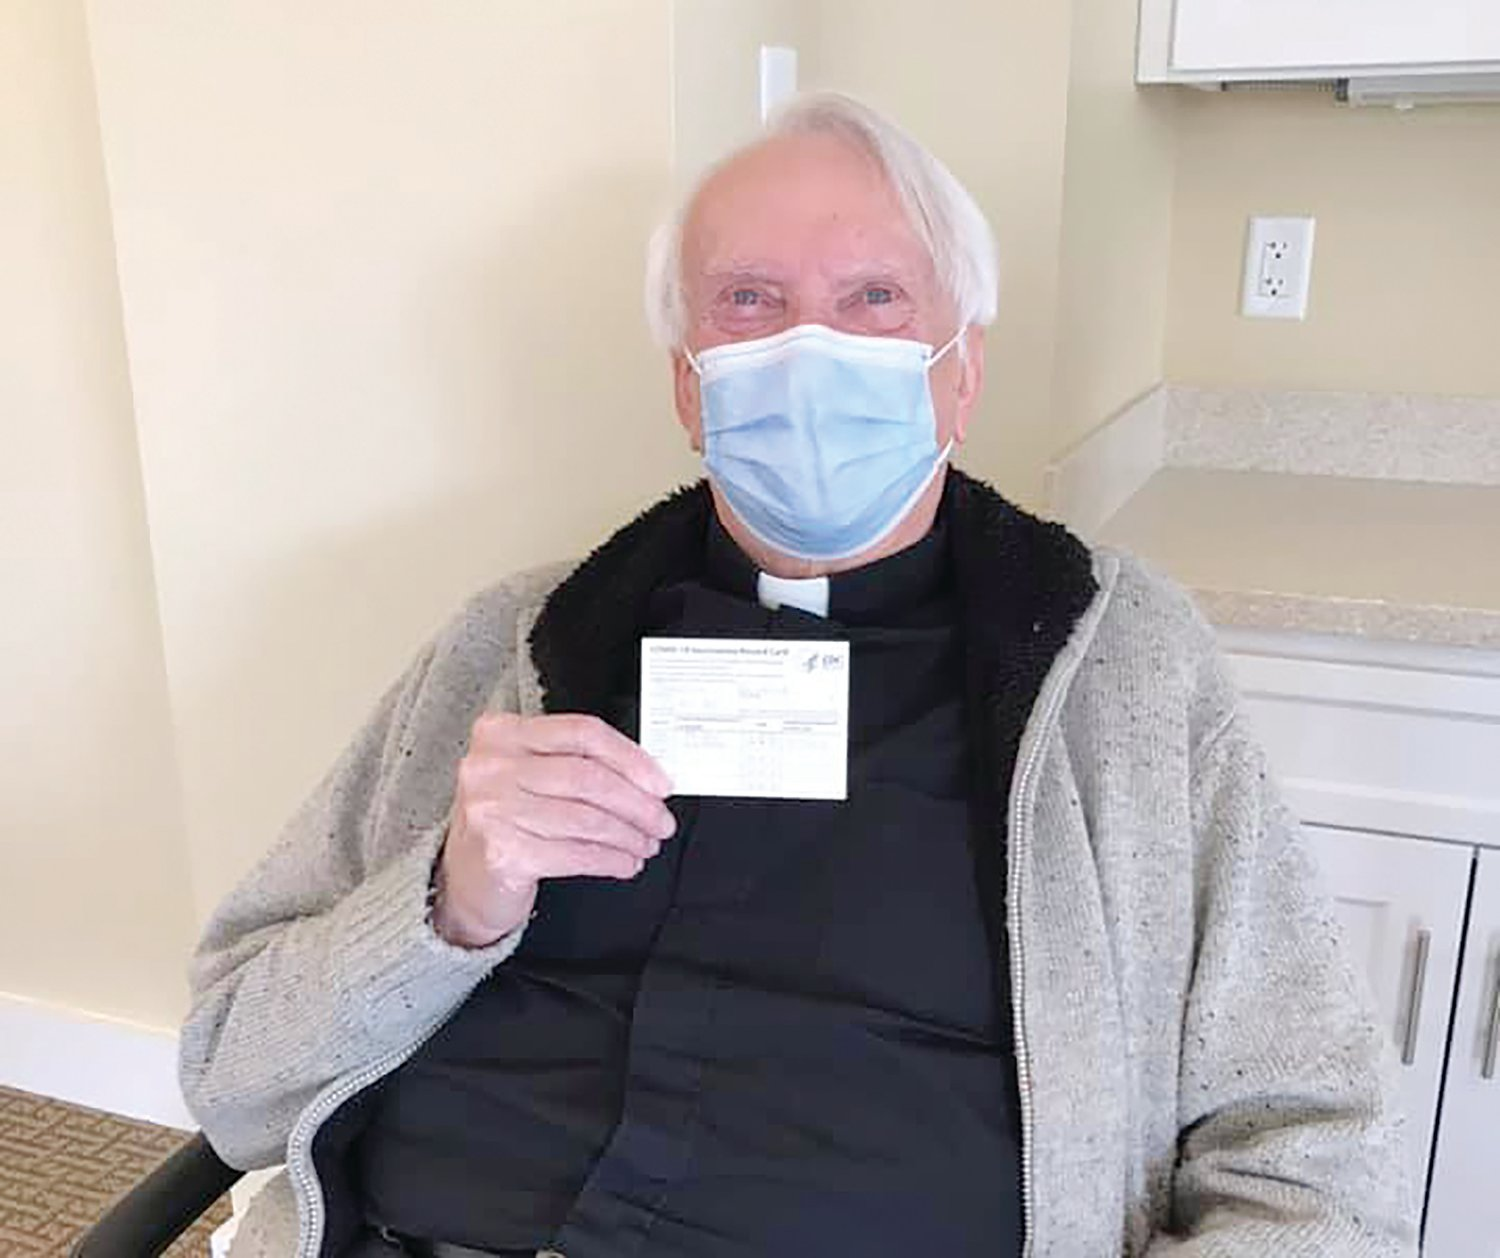 On January 8, CVS visited St. Clare-Newport to administer the first round of vaccines for residents and staff. Pictured with documentation of the shot is Father Ray Theroux.